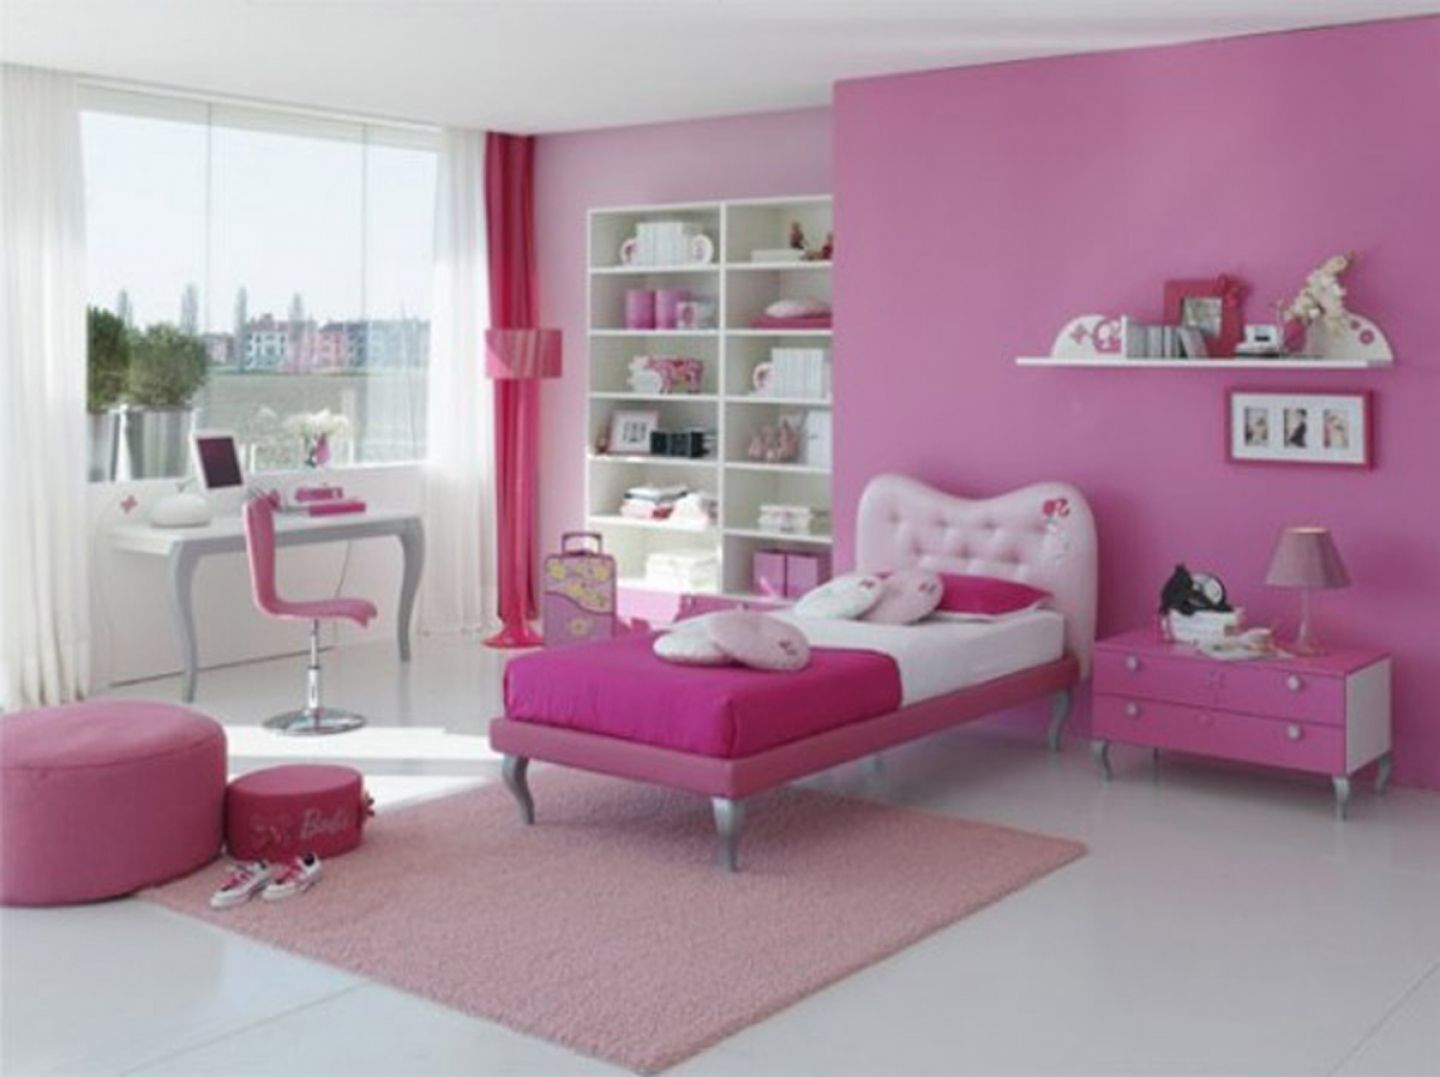 Girls Room Designs 30 Beautiful Bedroom Designs For Teenage Girls  Beautiful Wall